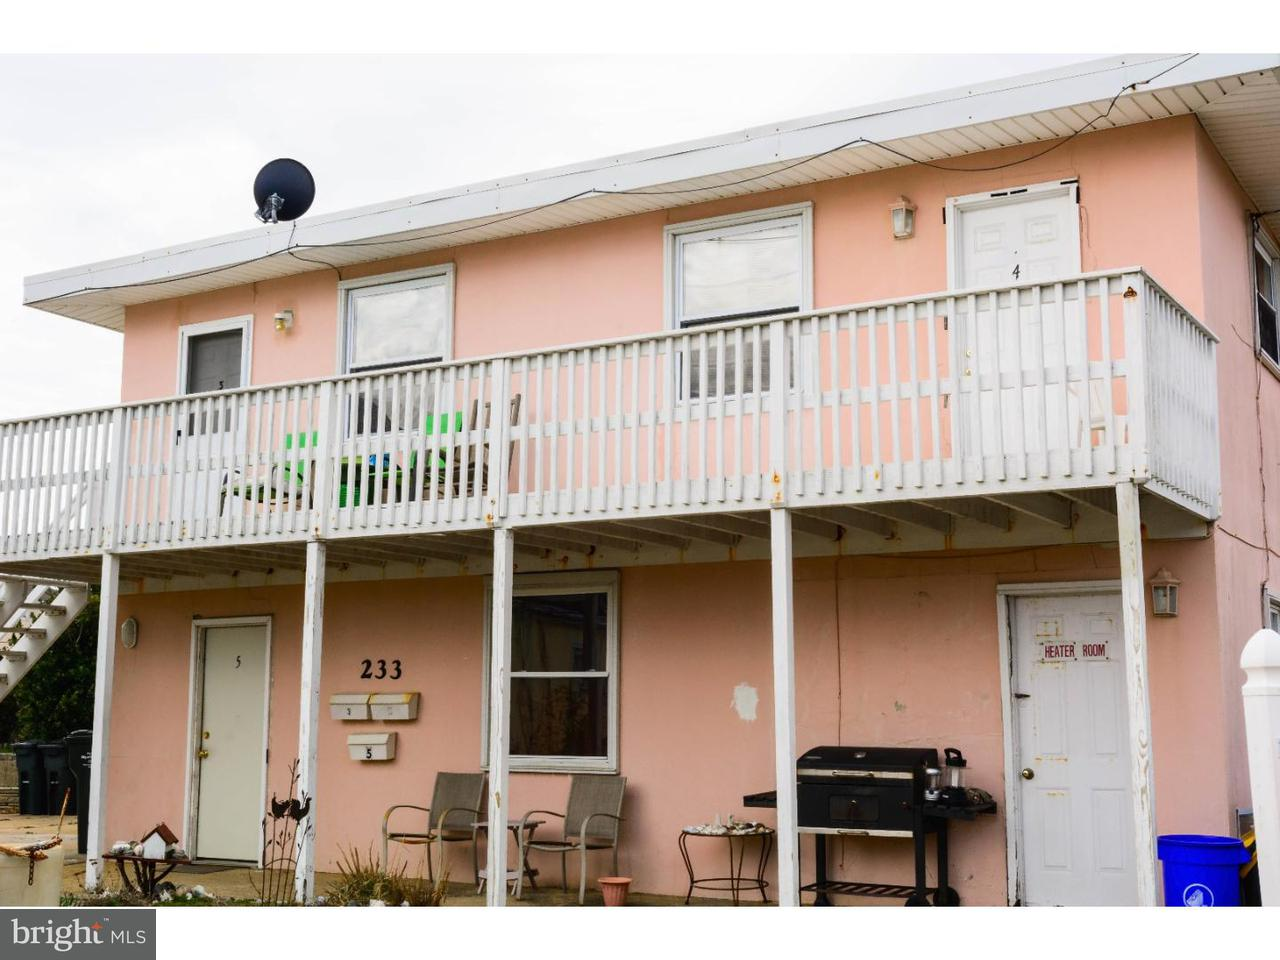 Triplex for Sale at 233 QUAY BLVD Brigantine, New Jersey 08203 United States